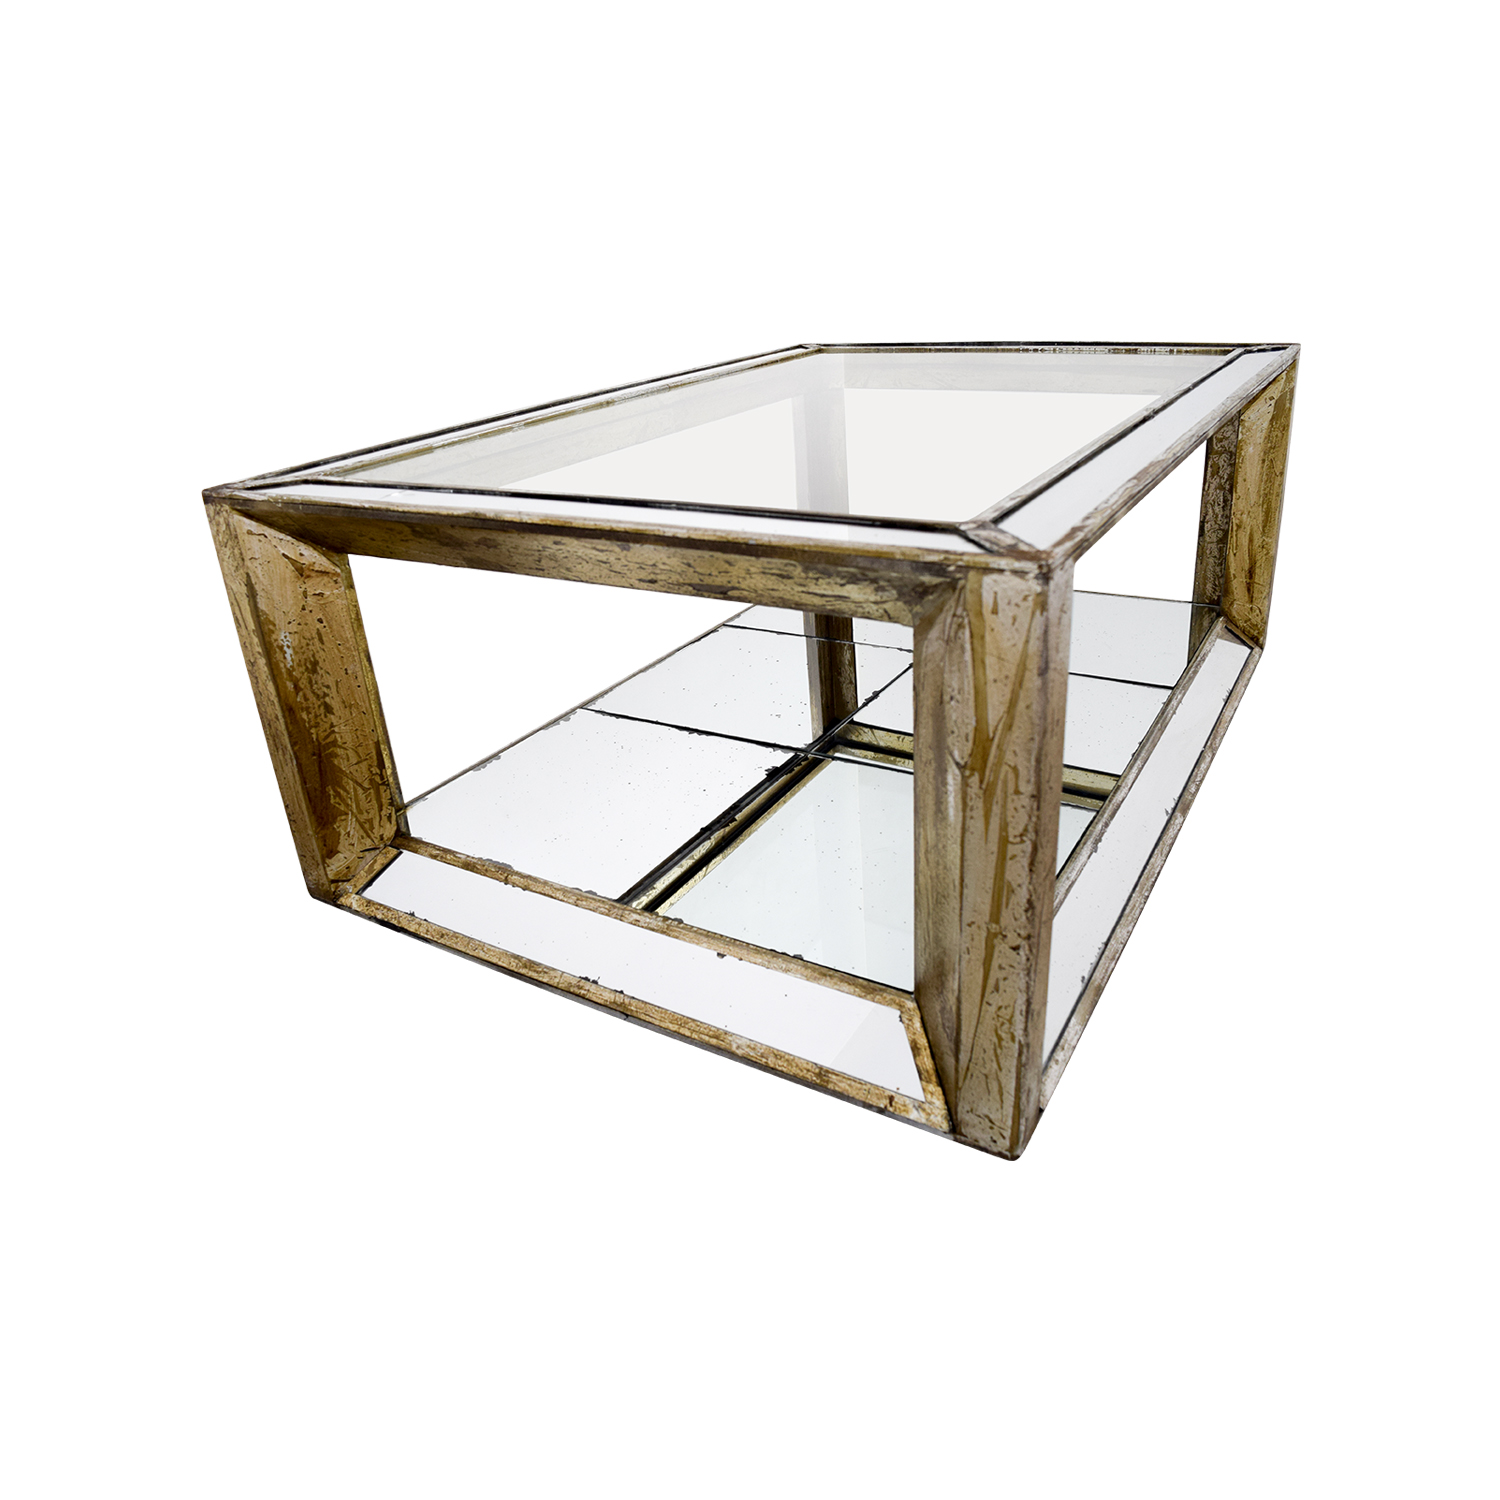 Houston Furniture Houston Furniture Mirror and Glass Coffee Table nyc